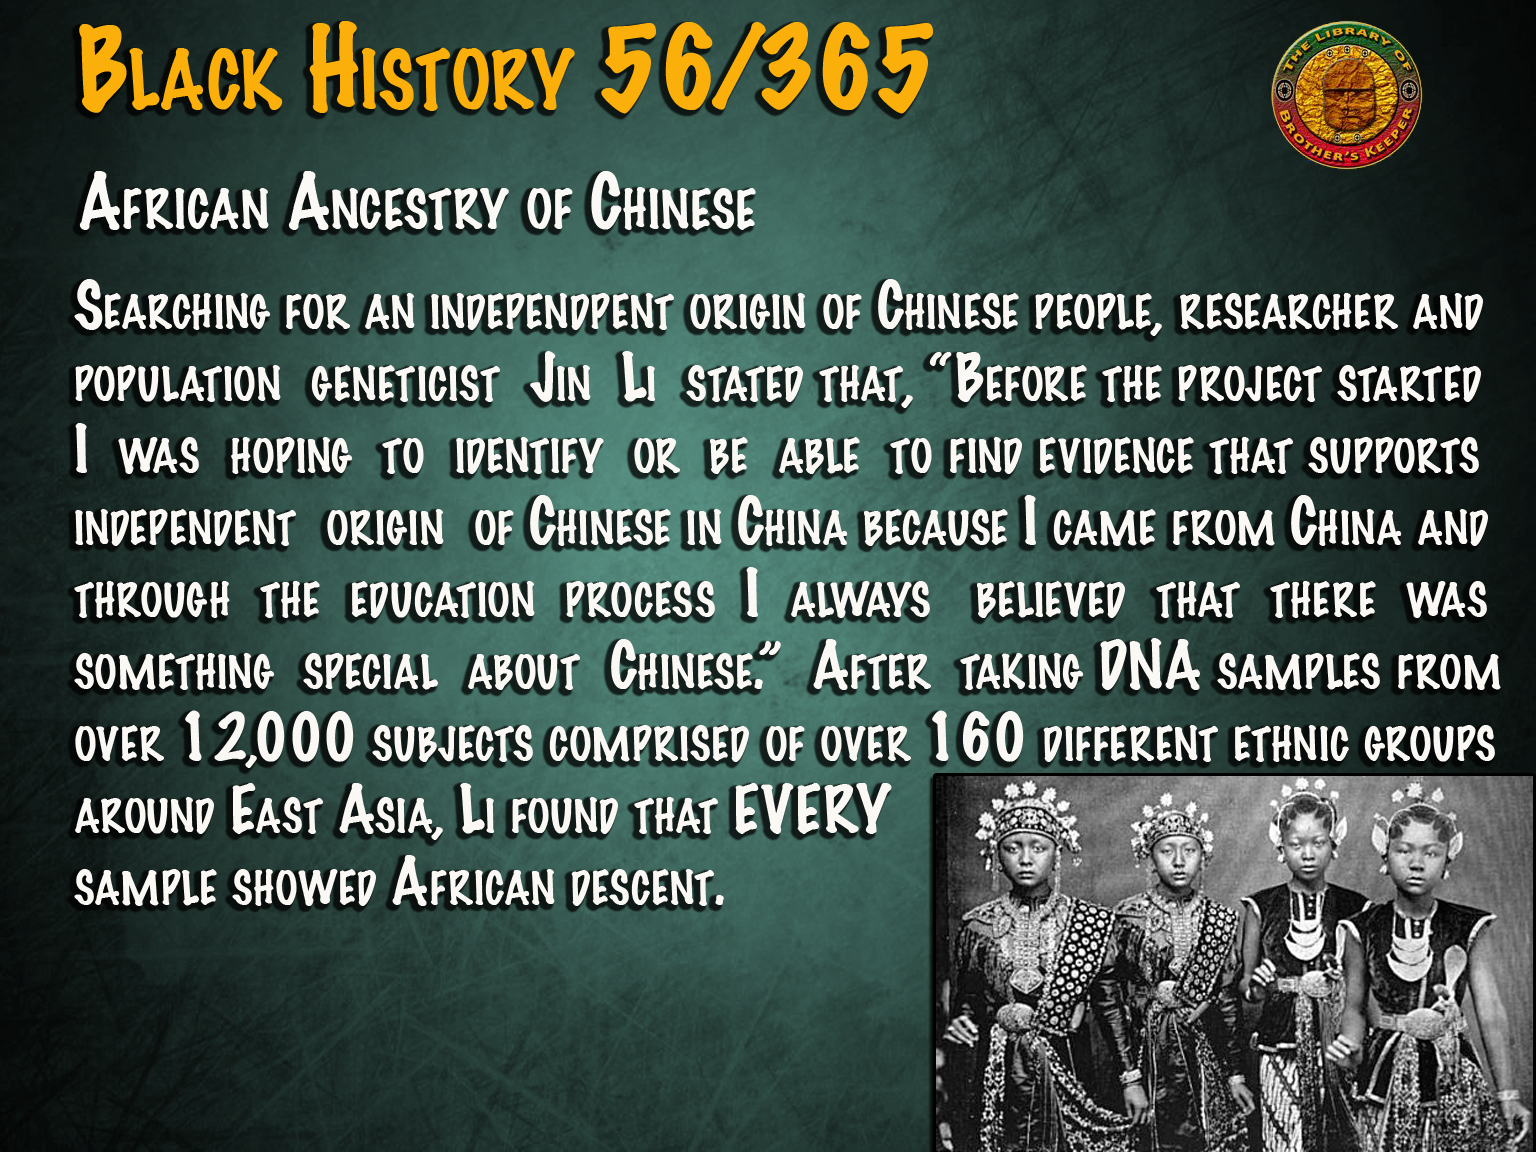 African Ancestry of Chinese